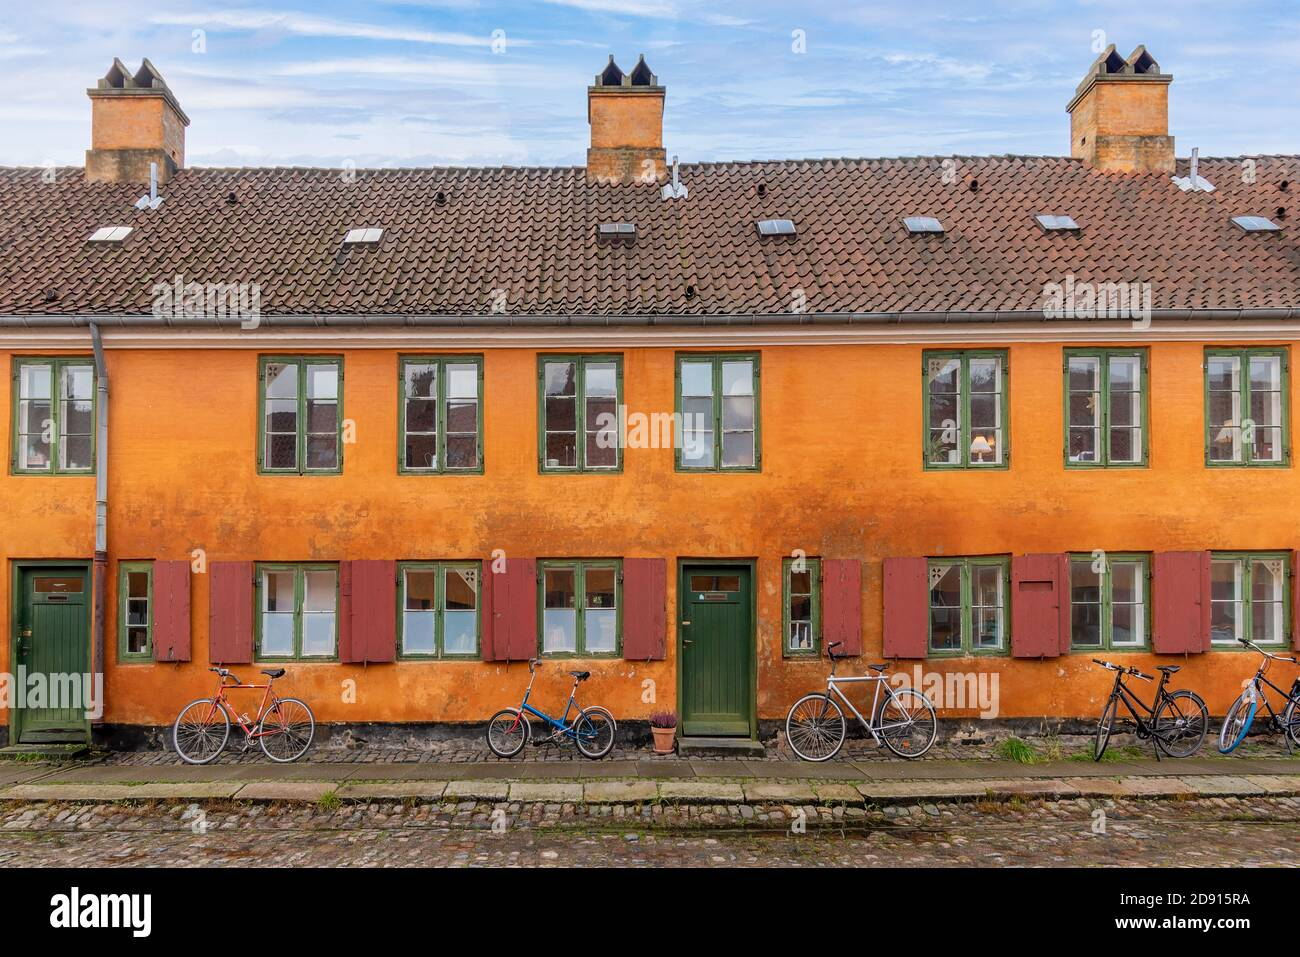 Copenhagen, Denmark - Historic yellow and orange coloured houses in the Nyboder neighborhood of Copenhagen, which was a former Naval di Stock Photo